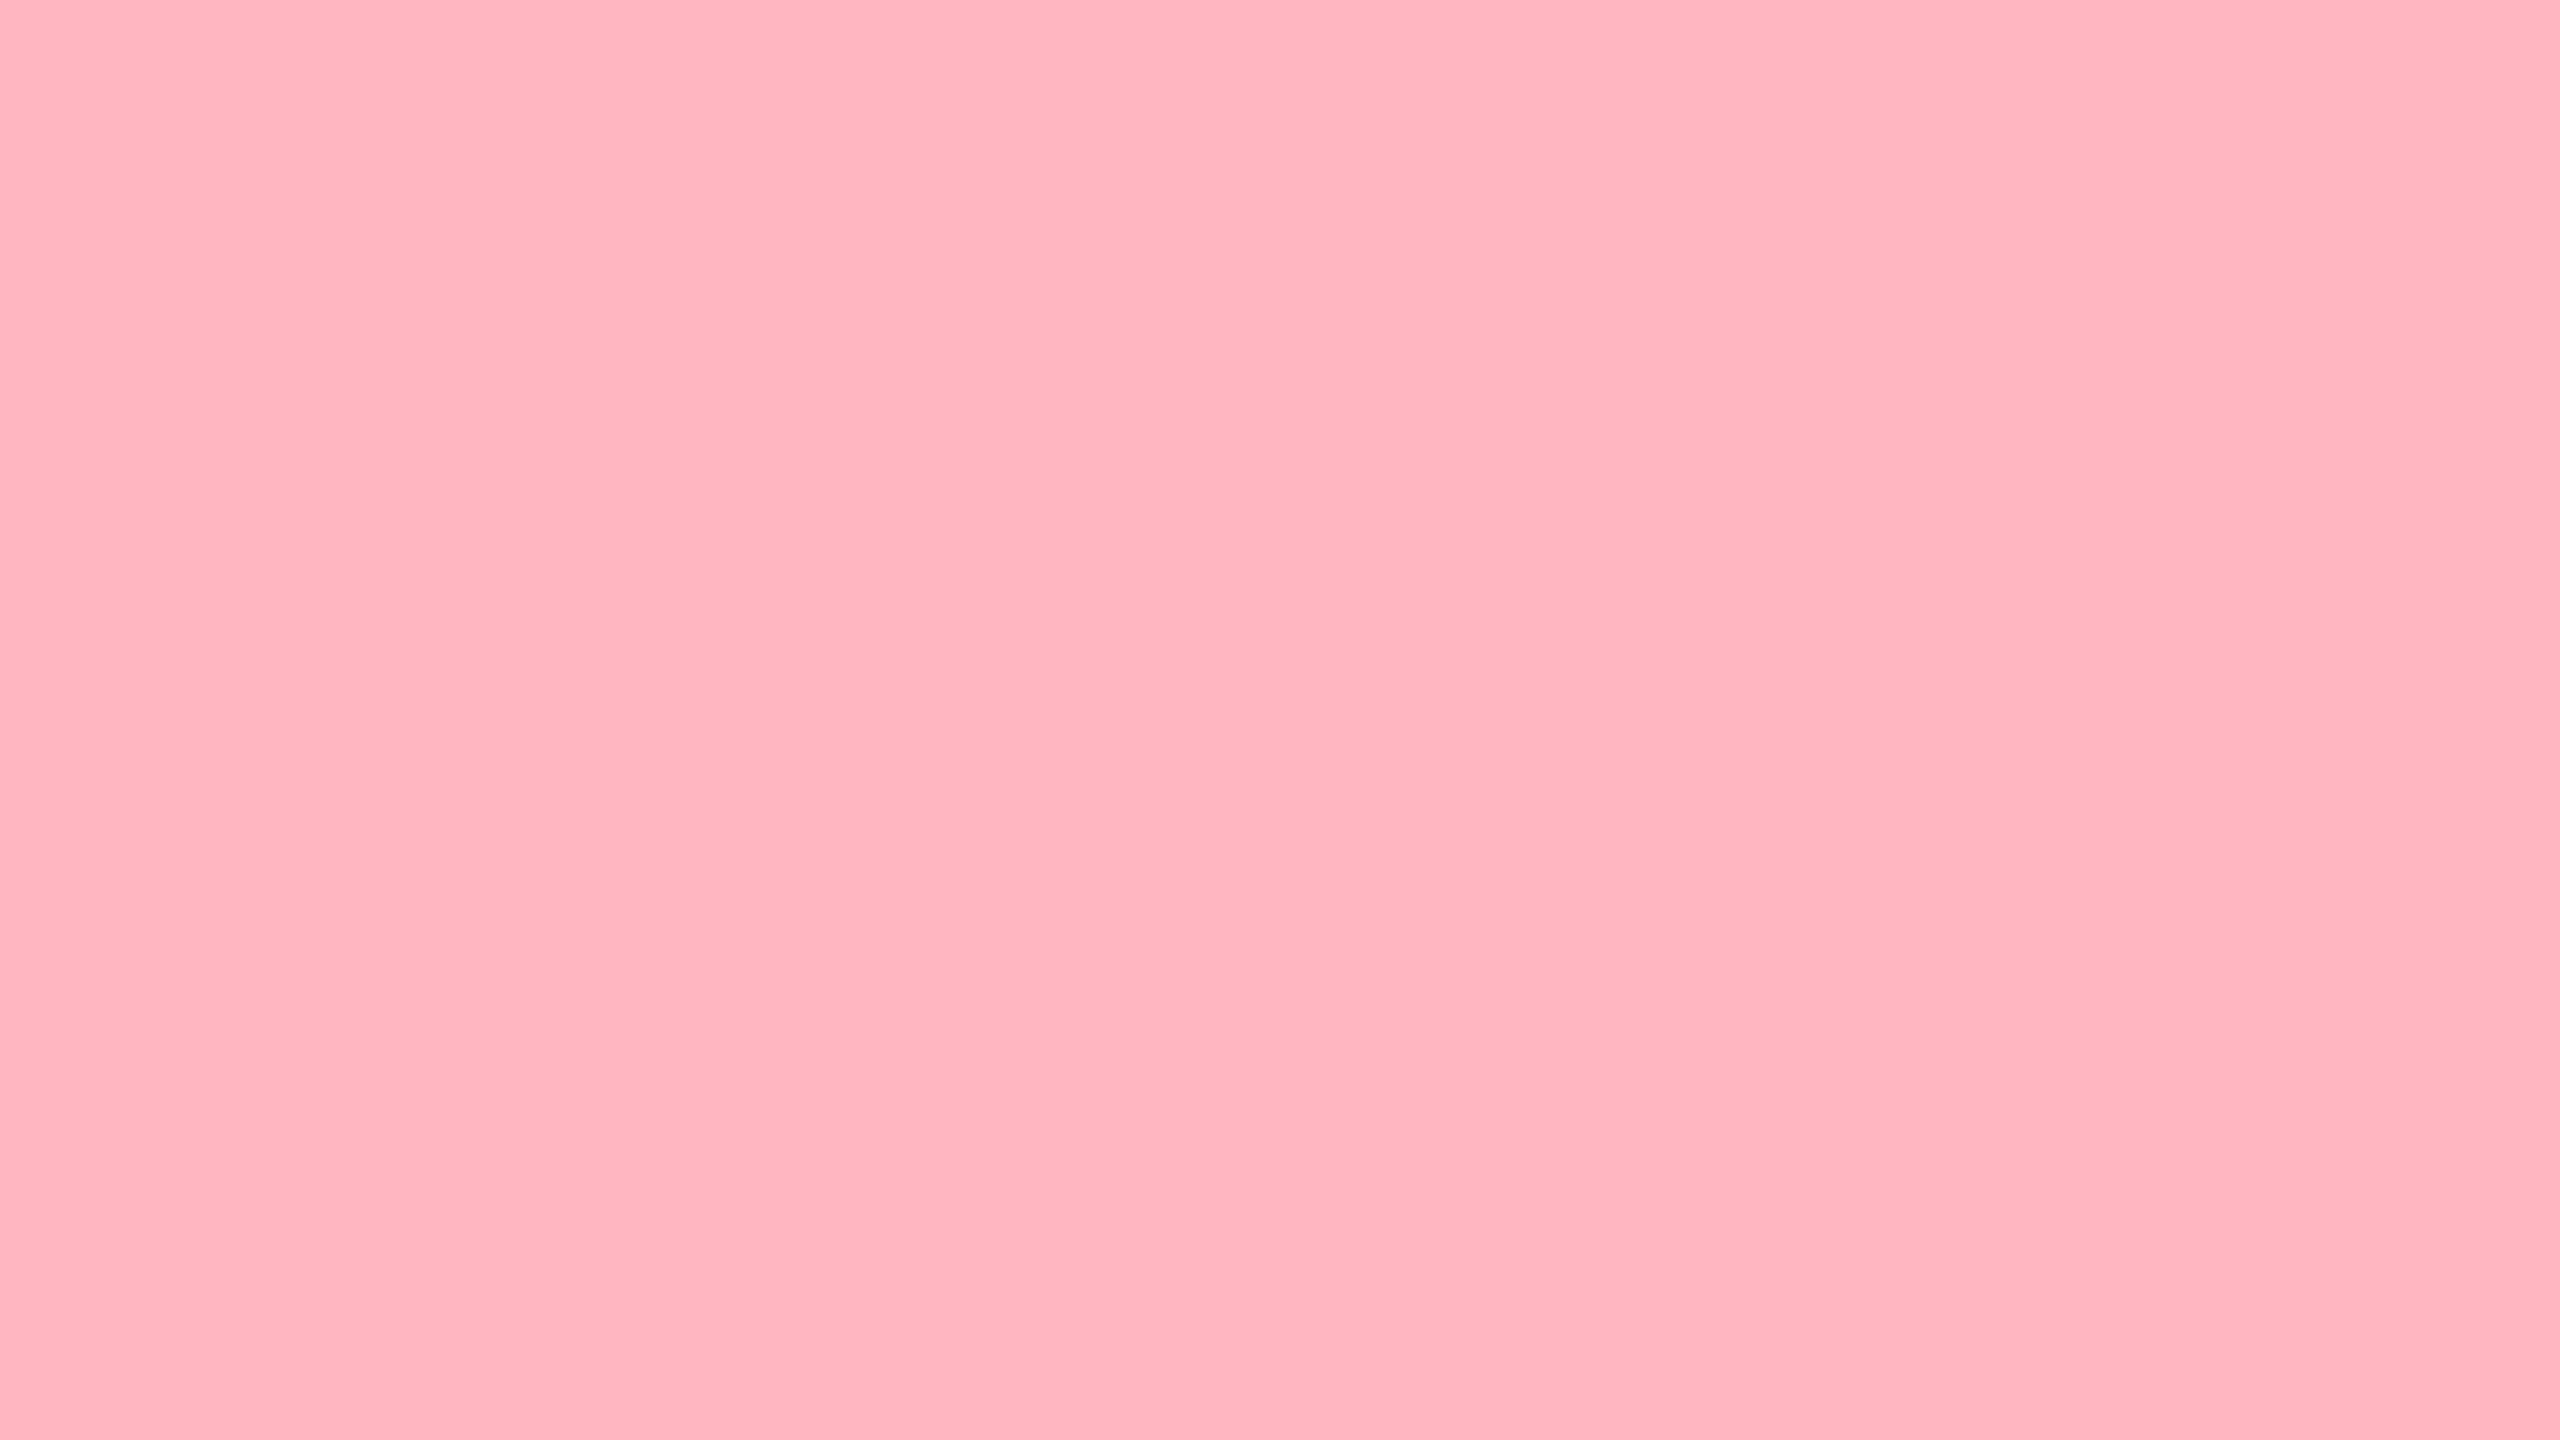 Tumblr Backgrounds Light Pink HD Wallpapers on picsfaircom 2560x1440